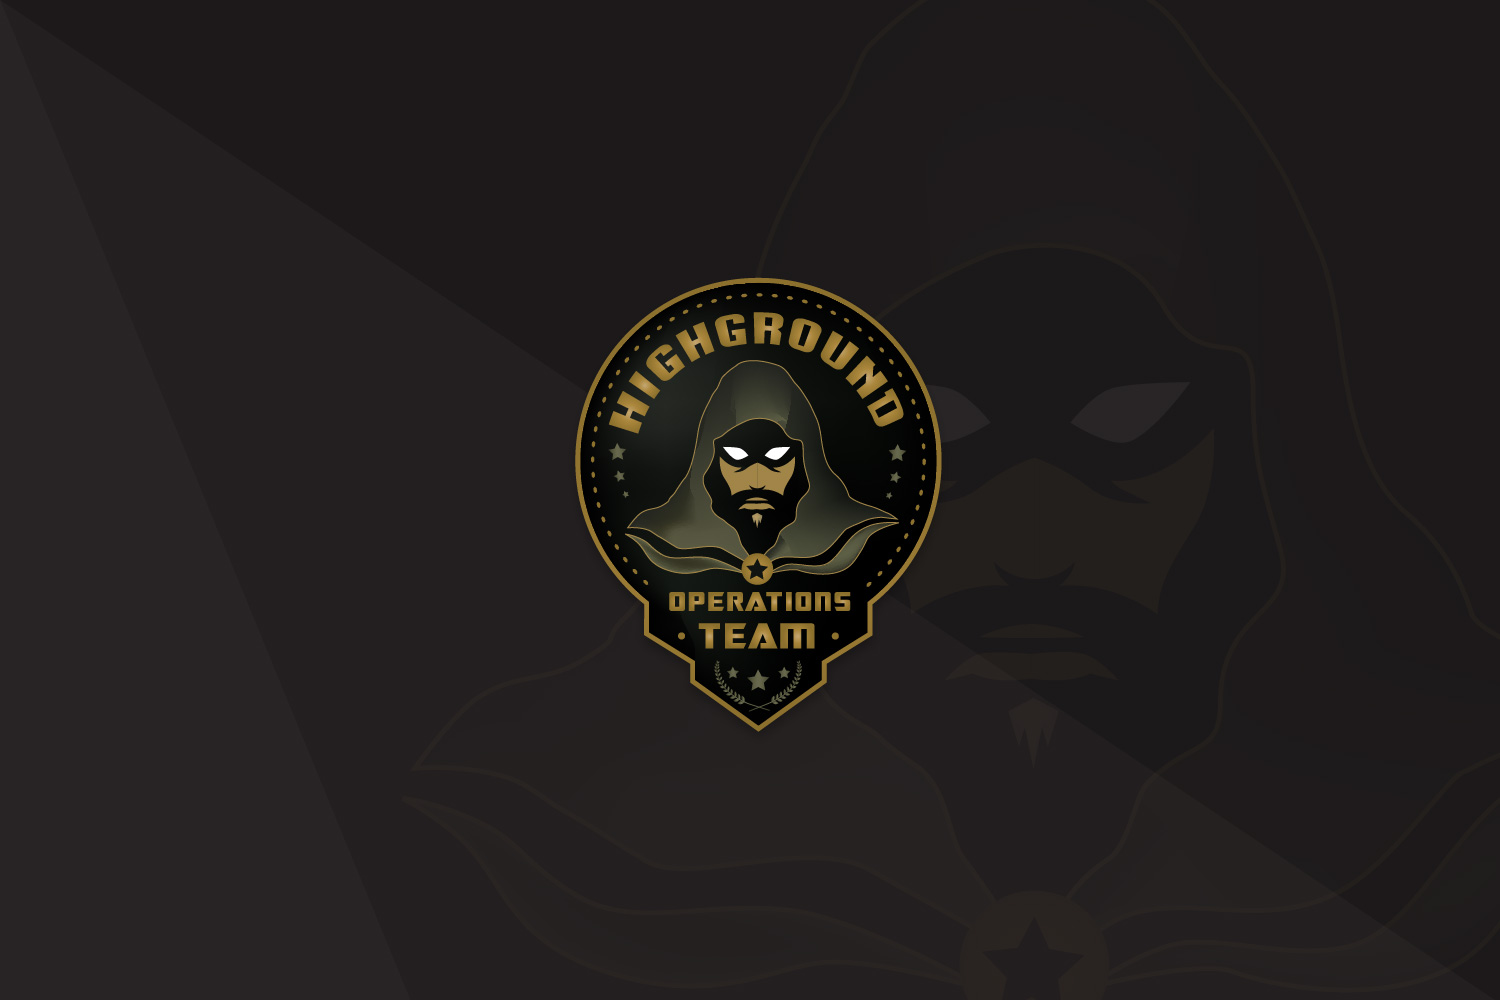 Highground Operations Team Logo